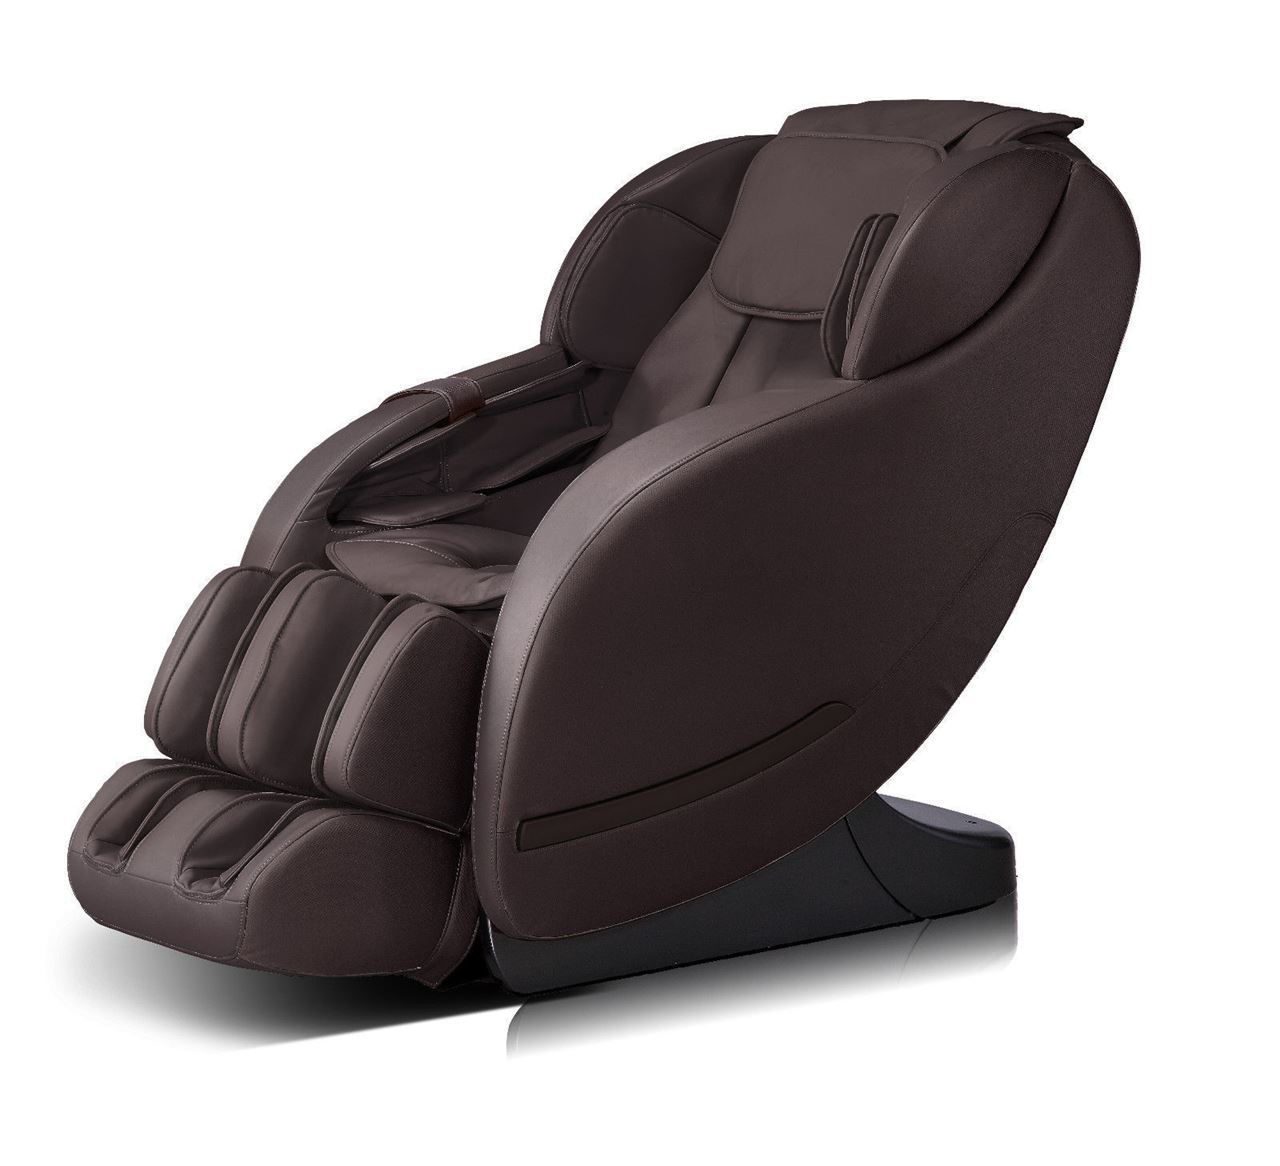 Picture of Full Body Zero Gravity Electric Shiatsu Massage Chair Foot Roller with Heat